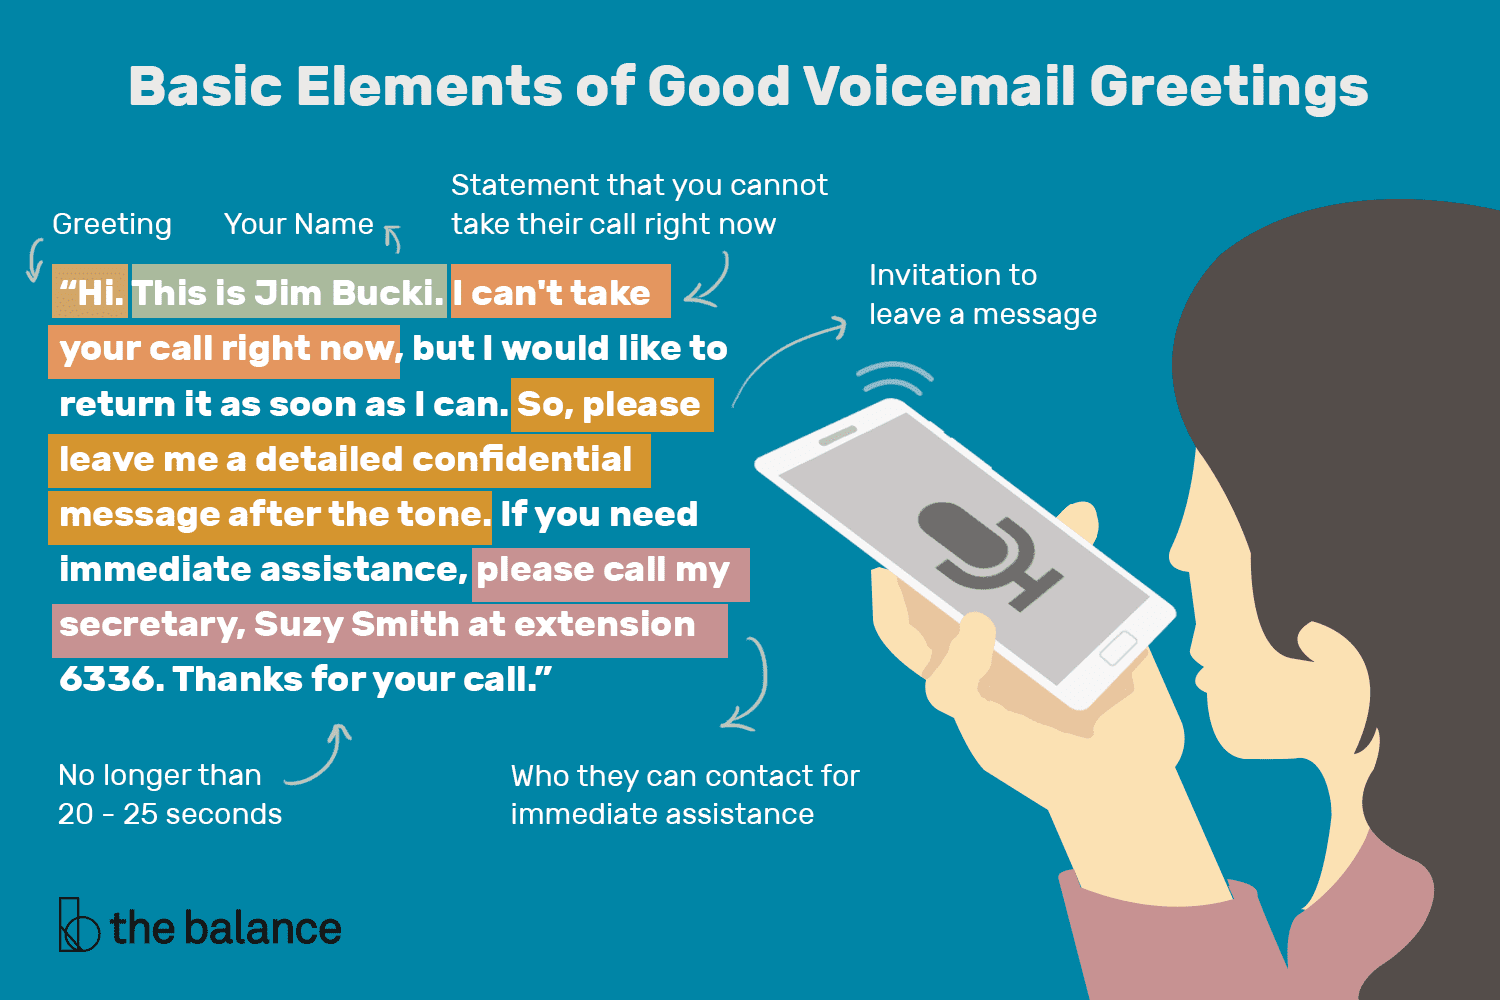 How to set up professional voicemail greetings what to include in a proper voicemail greeting m4hsunfo